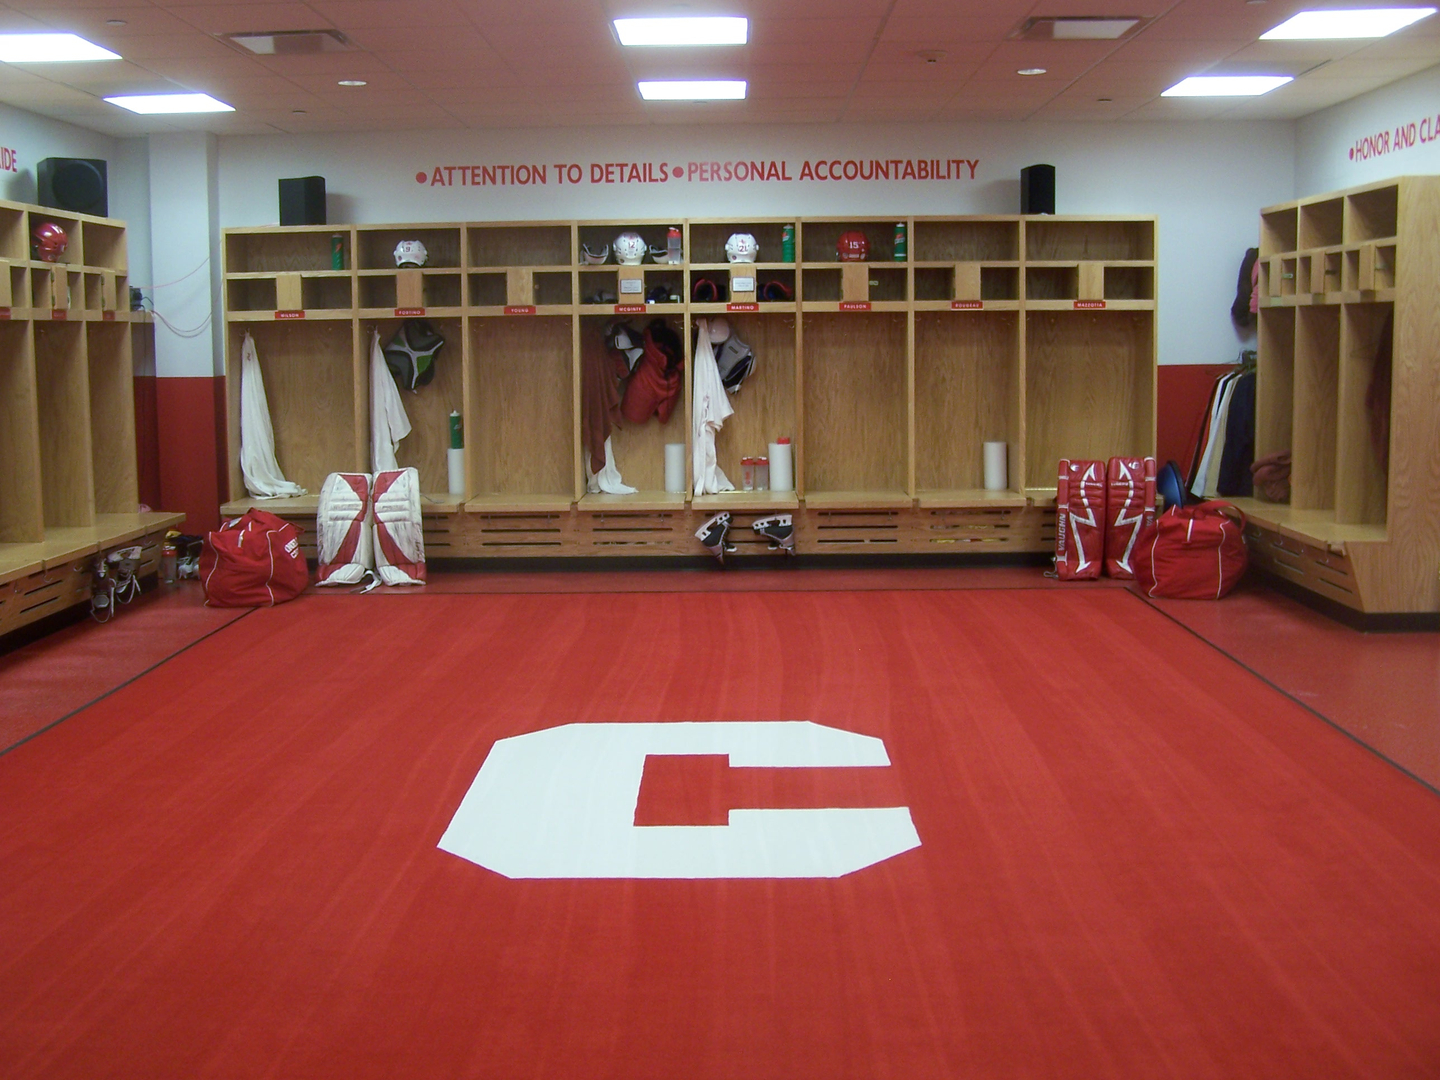 Hockey Locker Rooms